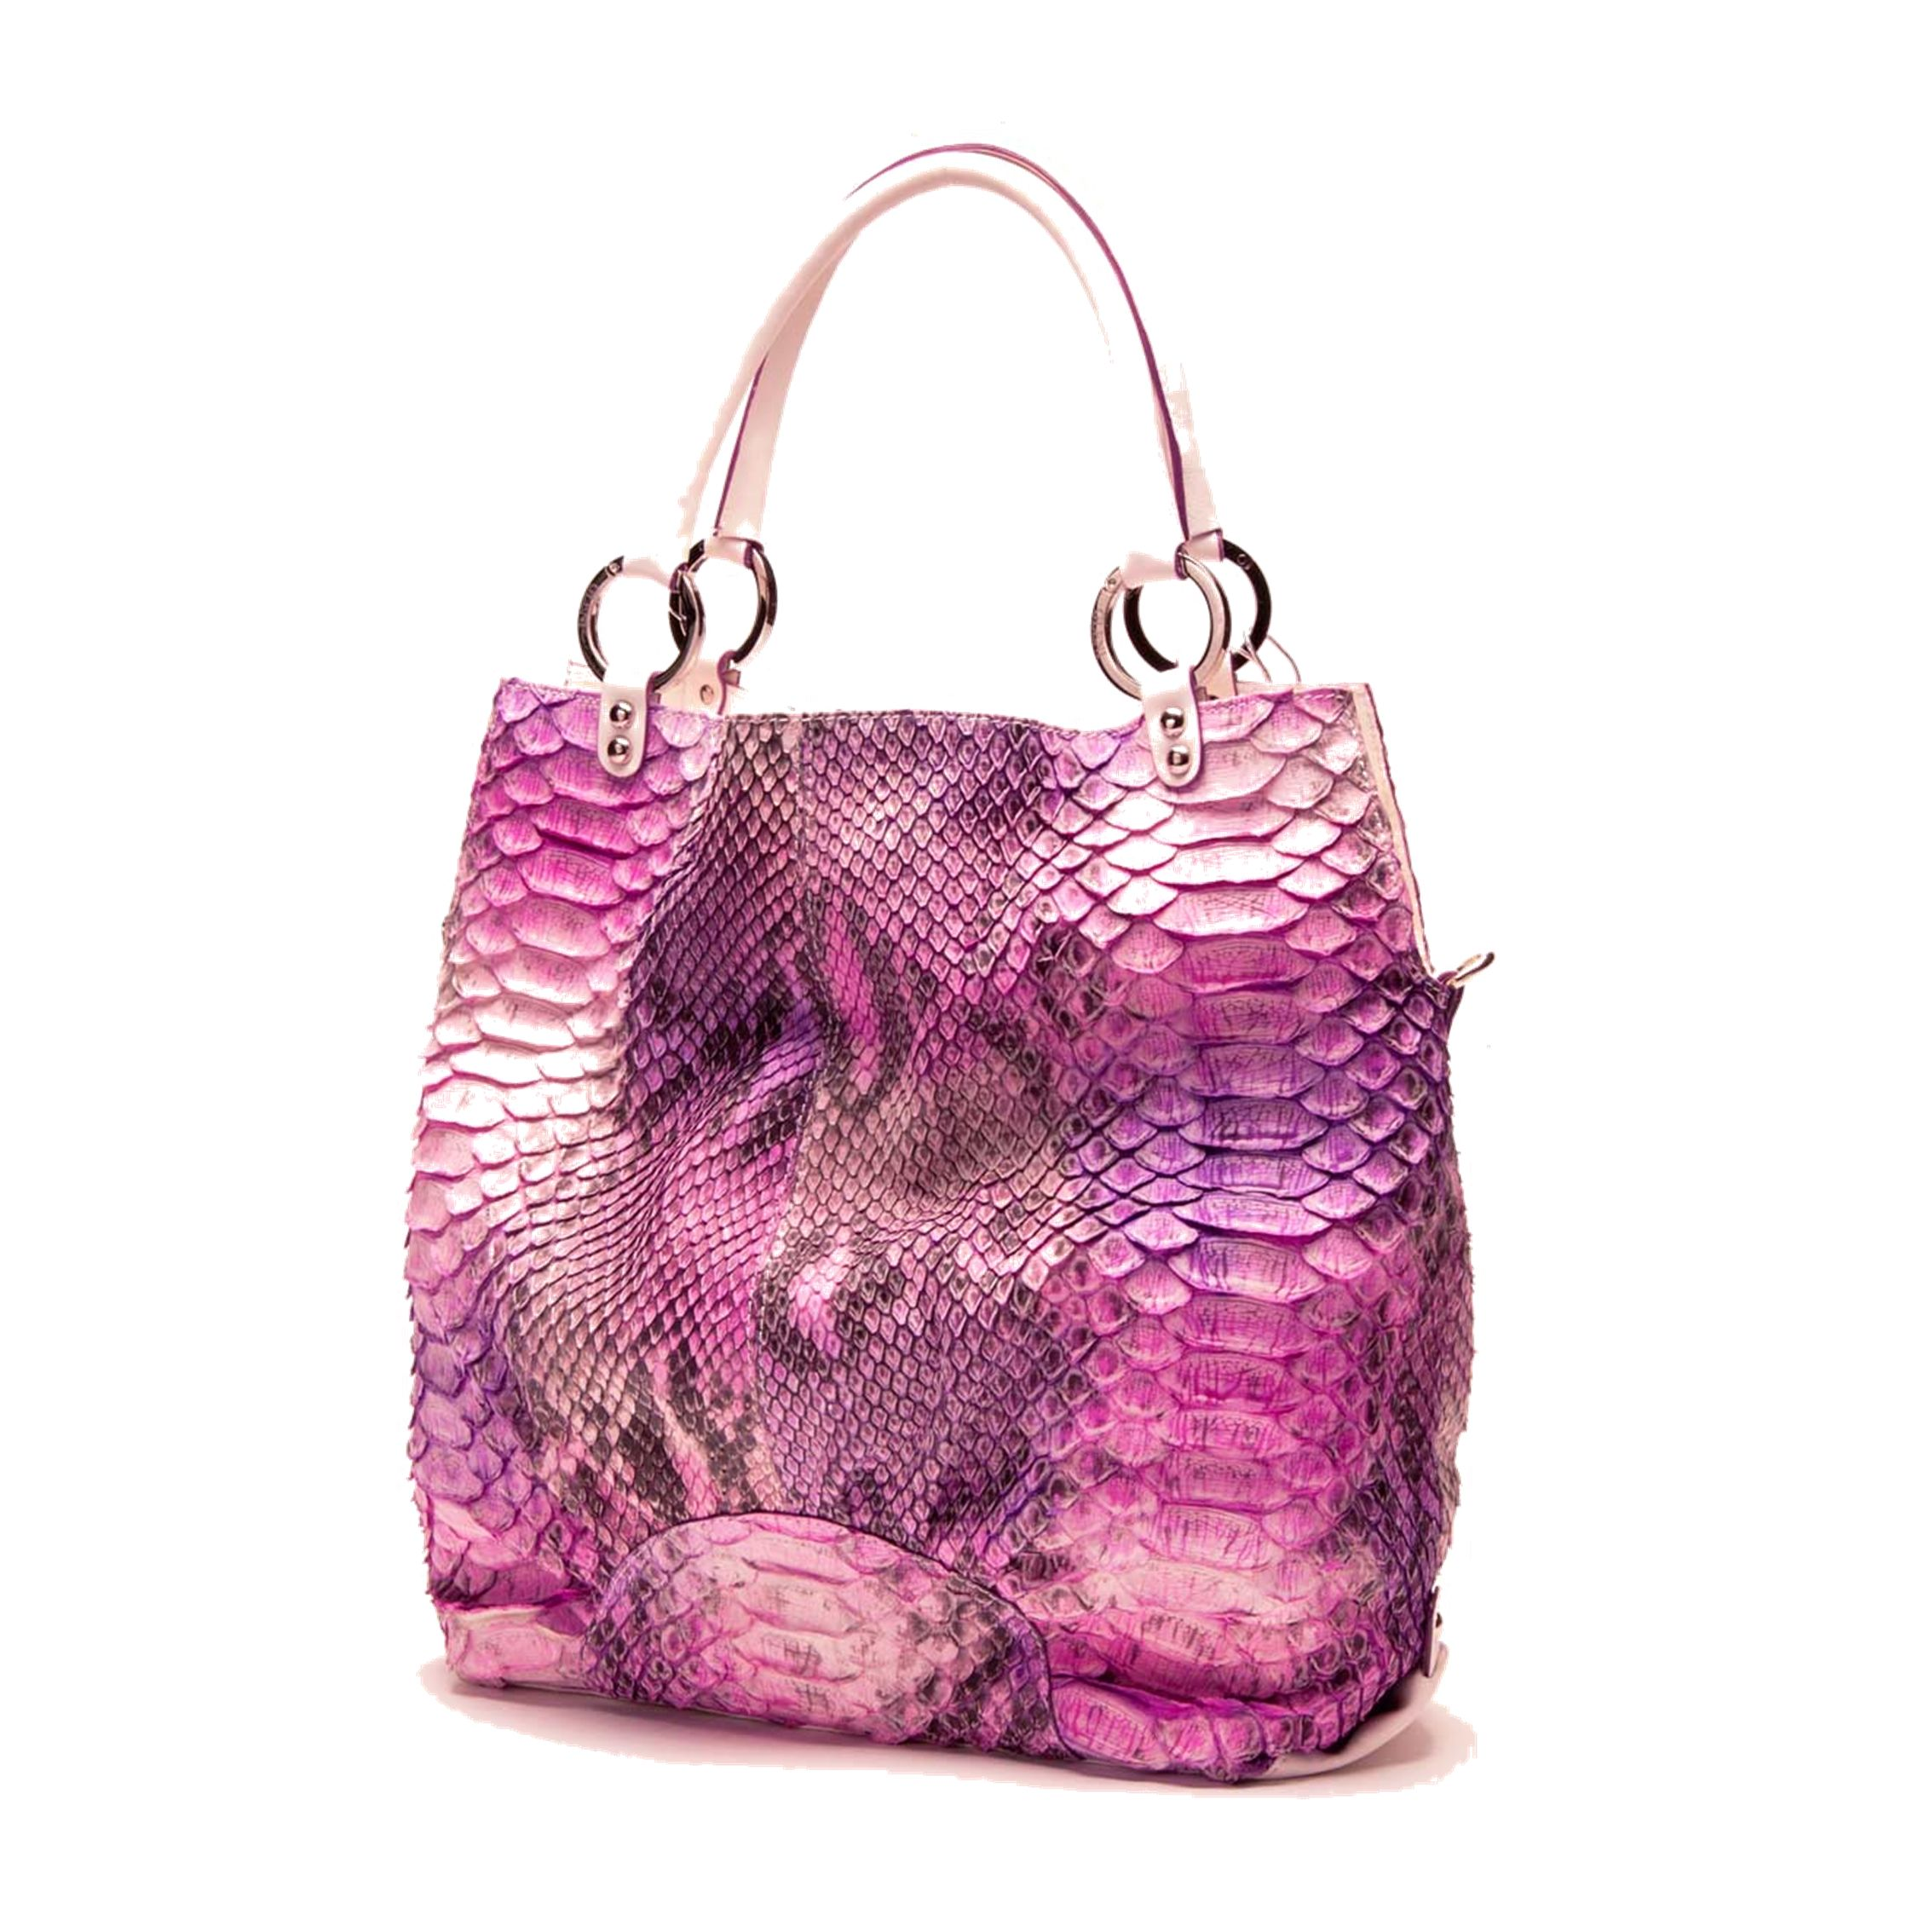 The BLUSH Python tote (not available in CA) by JACOB TAYLOR NEW YORK.  by  Appointment or Special Order Only  Rare and Exotic Color  For Serious  Inquiries 0b08041e2356b